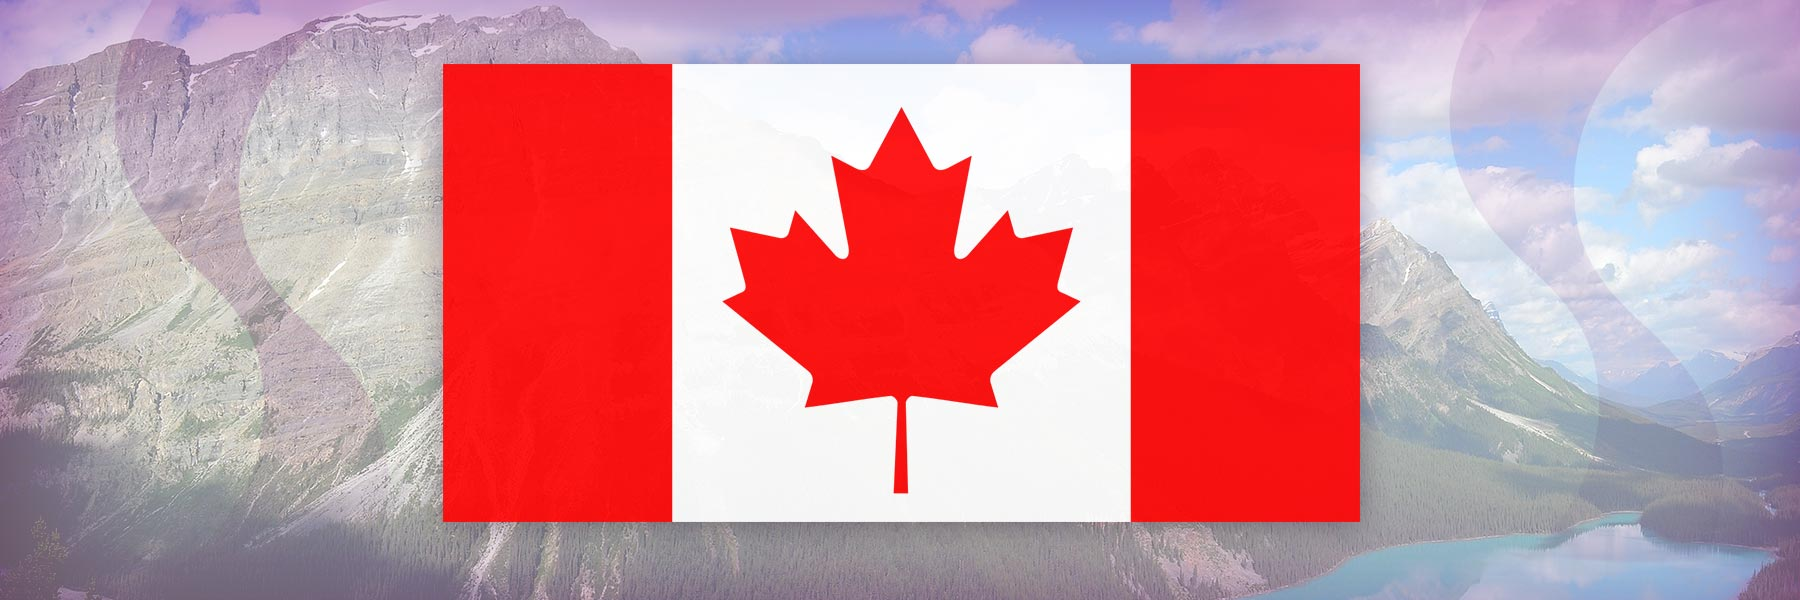 Canada flag and scenery